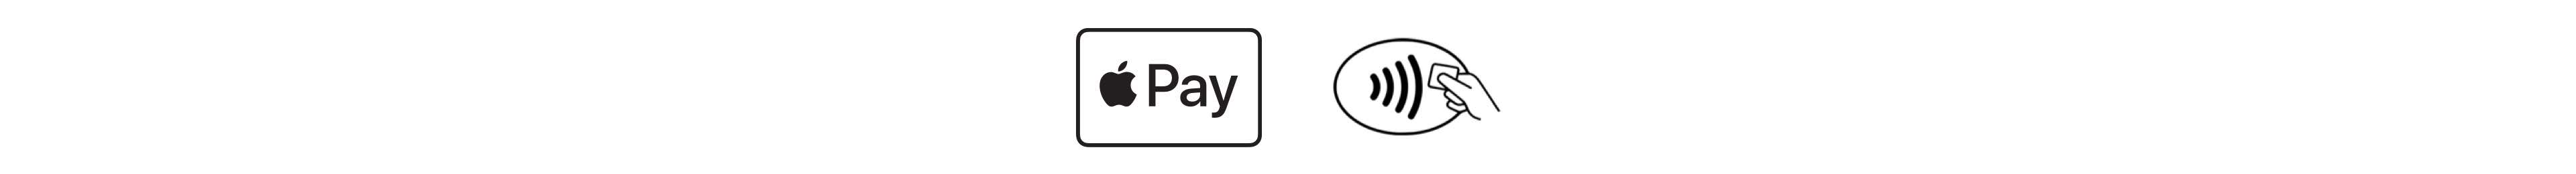 Apple Pay TM und Contactless